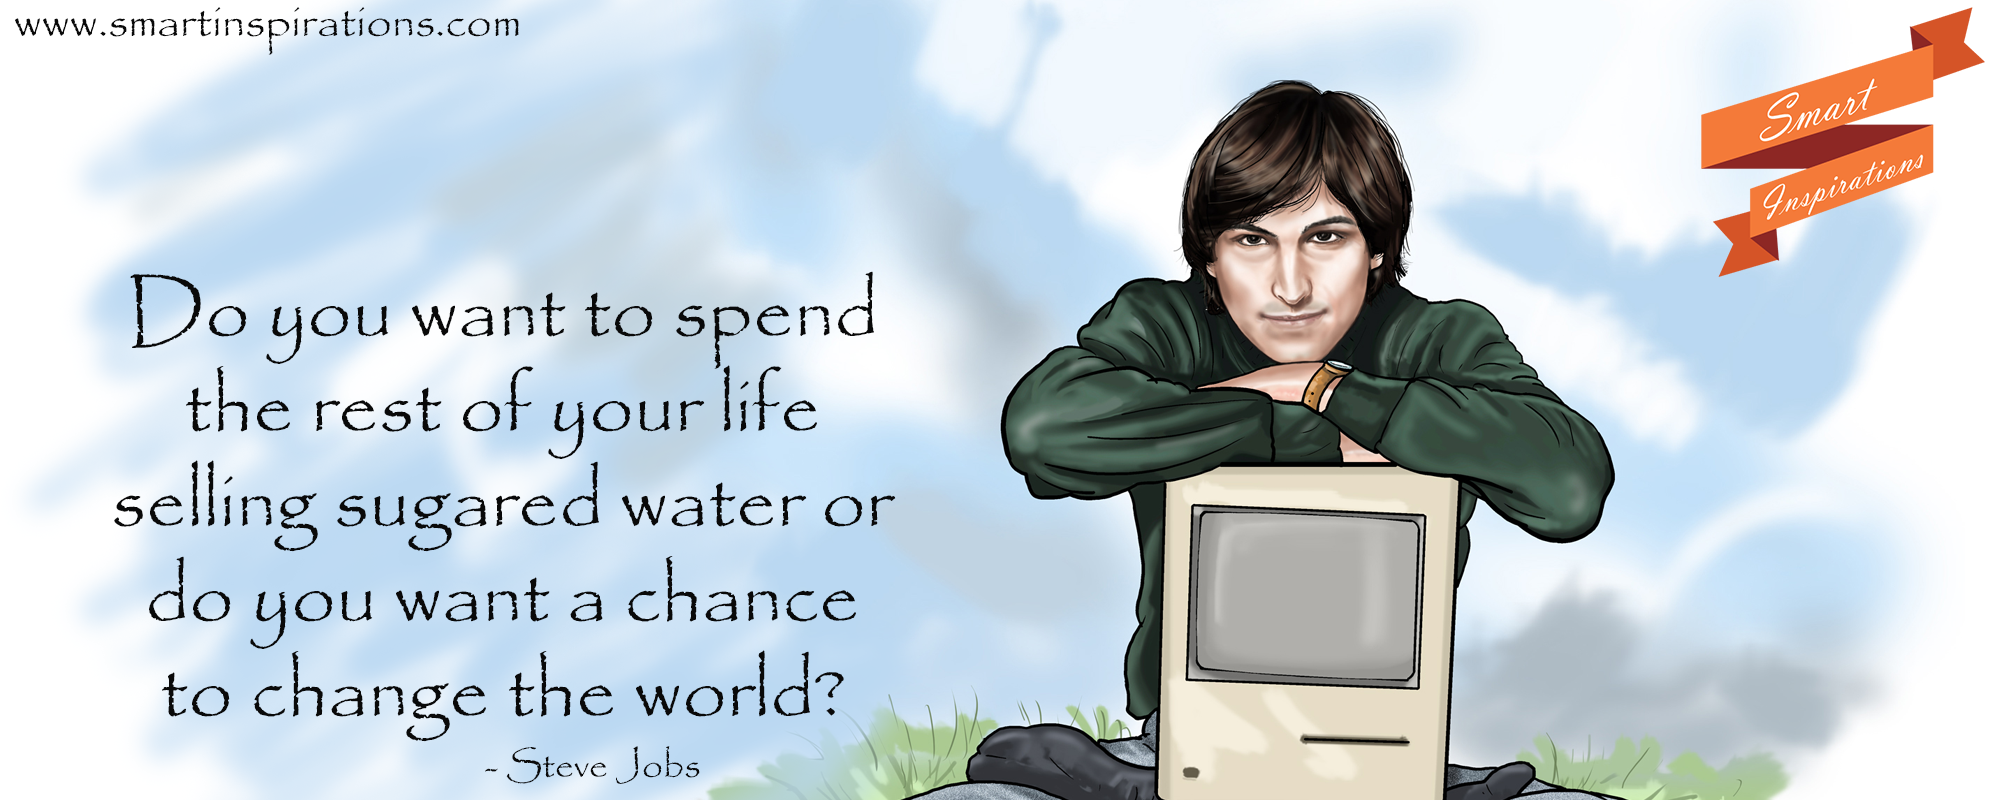 steve jobs quotes do you want to spend the rest of your life selling sugared water or do you want a chance to change the world - Why Do You Want To Change Your Job